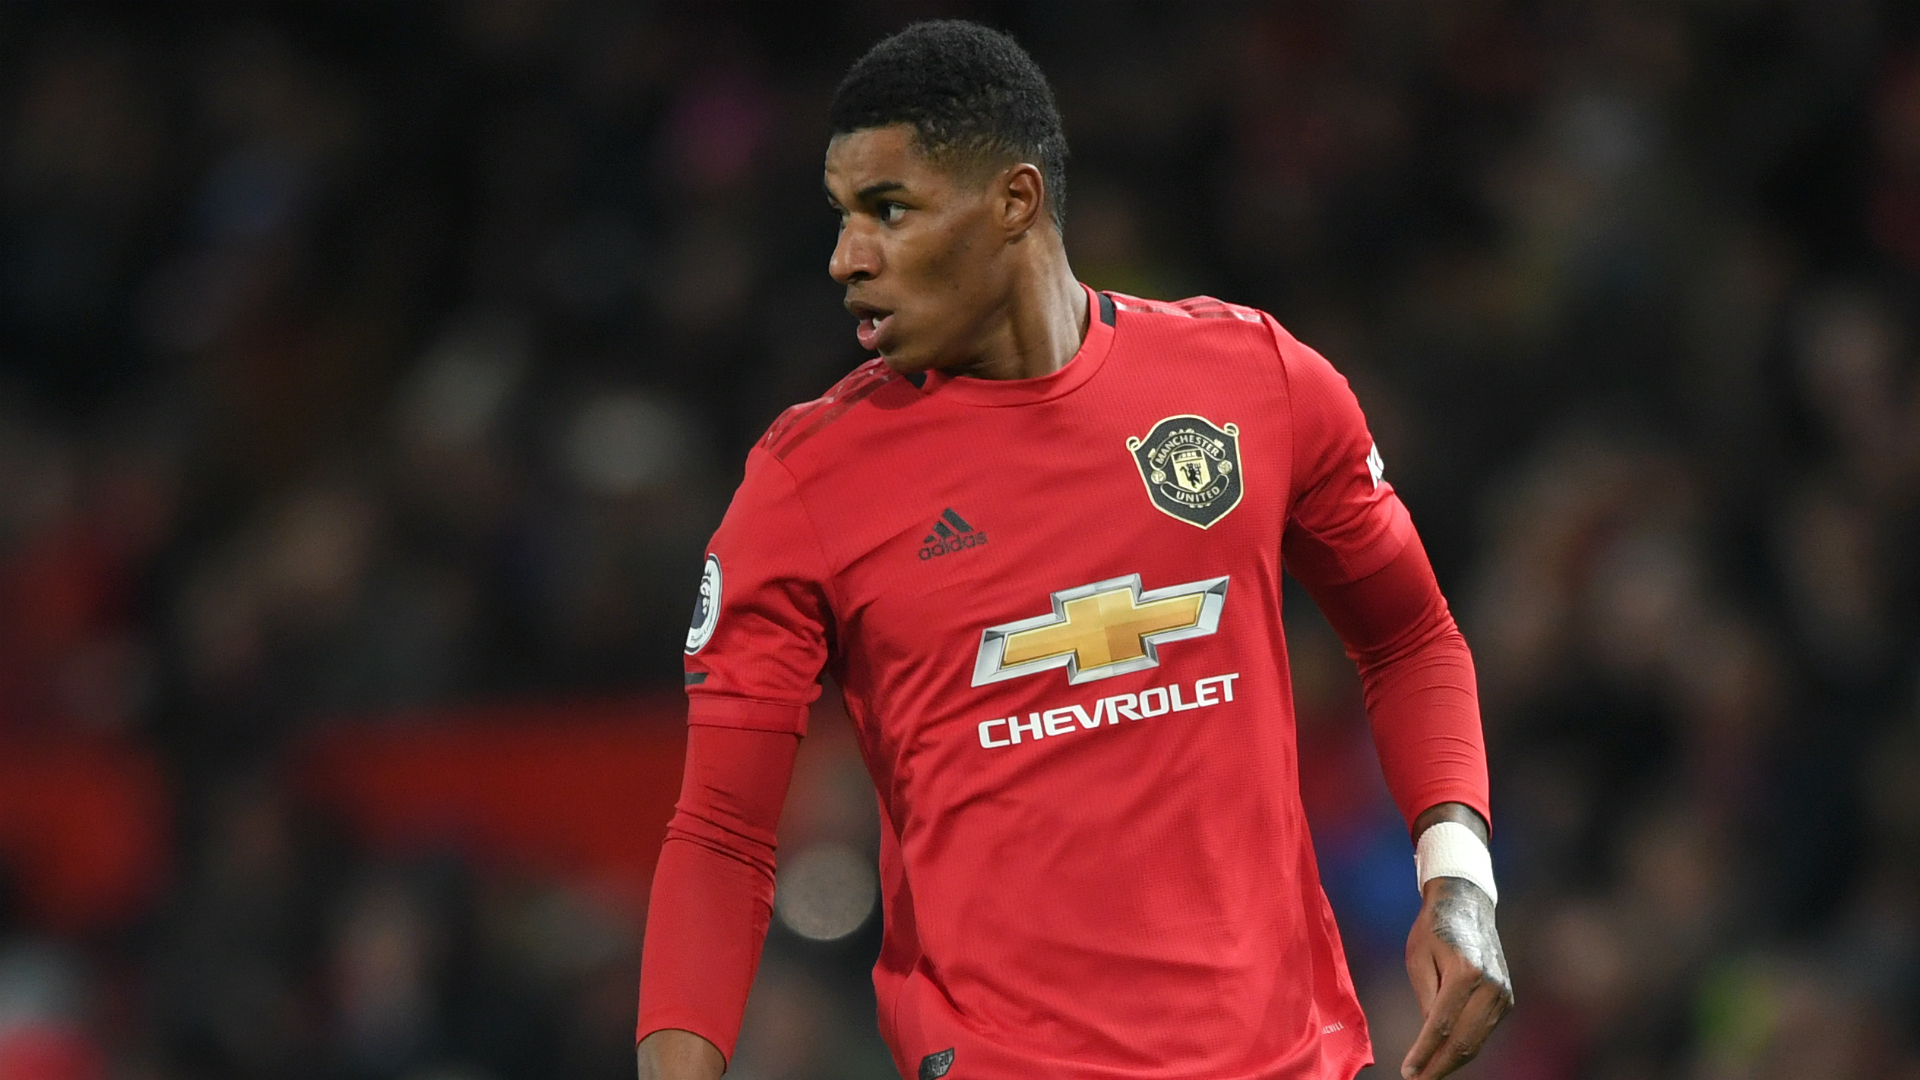 Man Utd boss Solskjaer hails two-goal hero Rashford and 'undroppable' McTominay